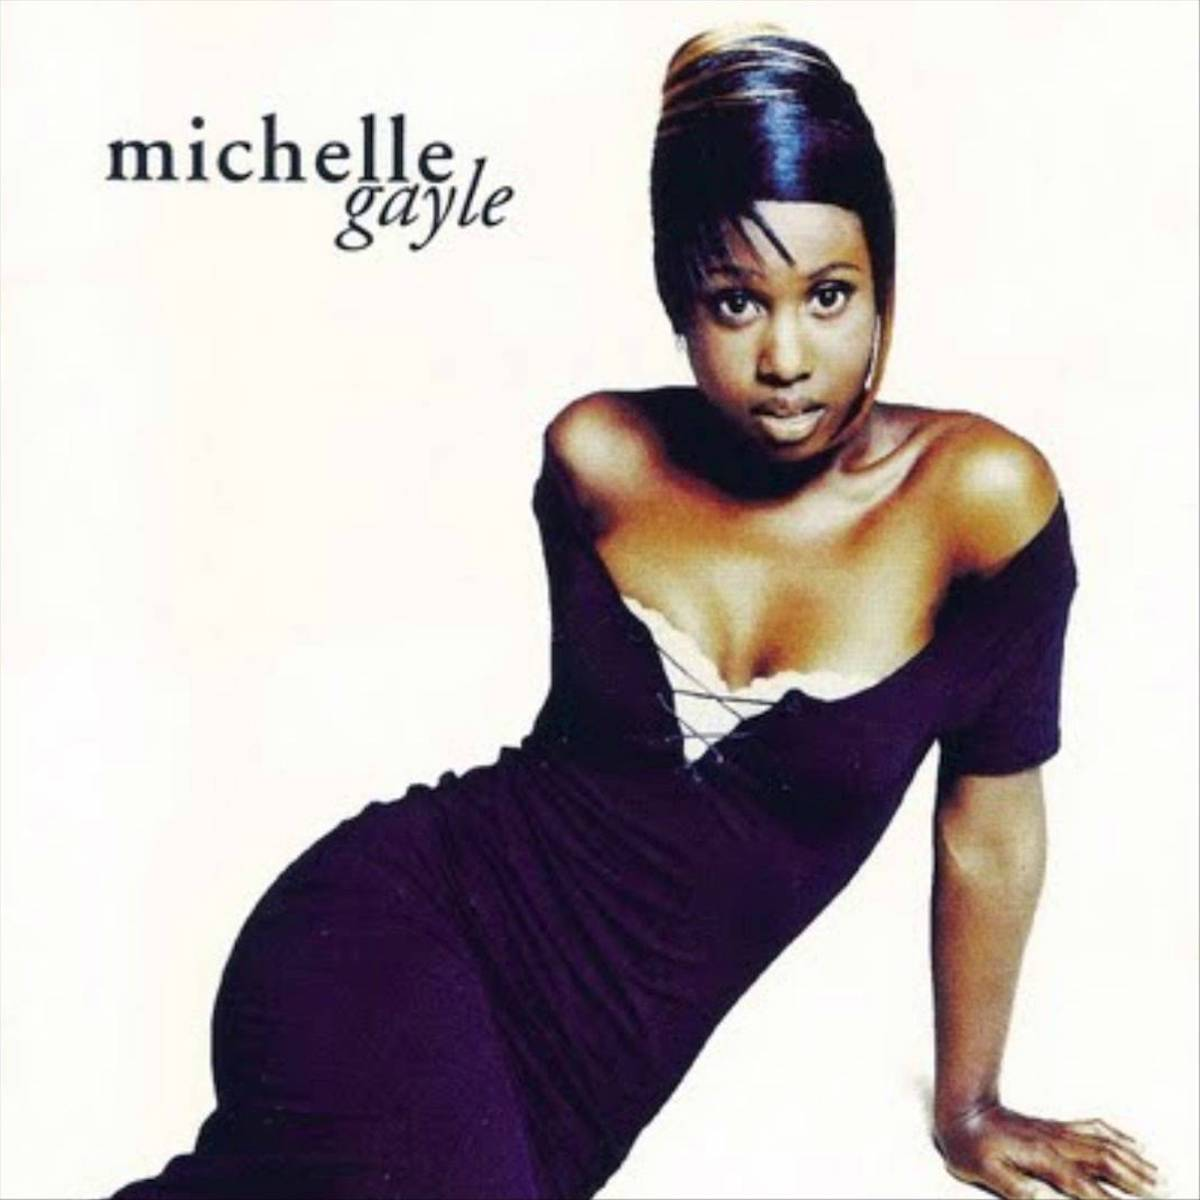 """HERITAGE: Michelle Gayle Performs R&B Classic """"Sweetness"""" Live On 'Top Of The Pops' (1994)"""